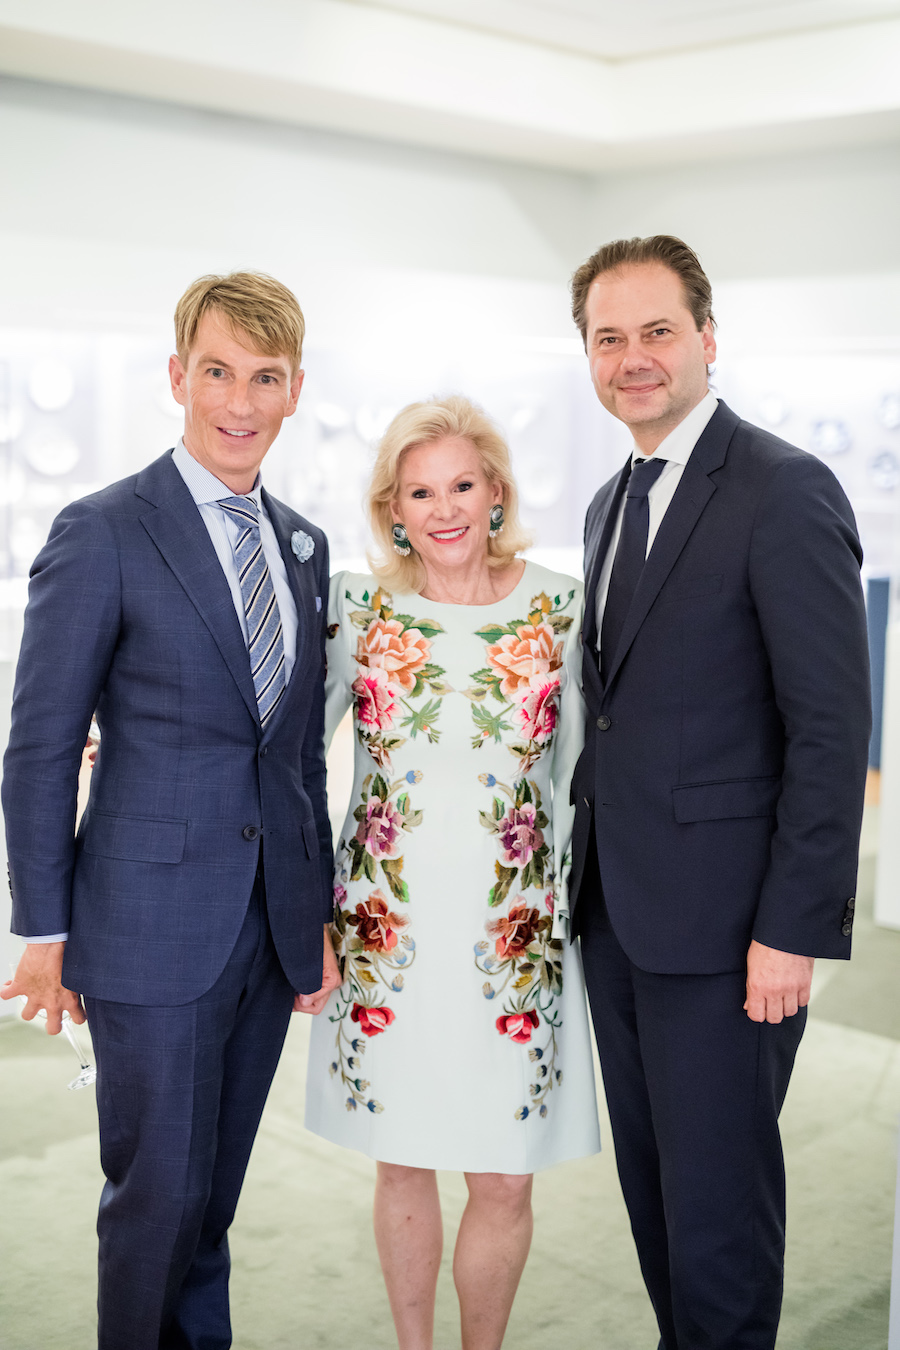 """Jack Calhoun, Dede Wilsey and Max Hollein at donor reception for """"Truth and Beauty: The Pre-Raphaelites and the Old Masters"""" earlier this year"""